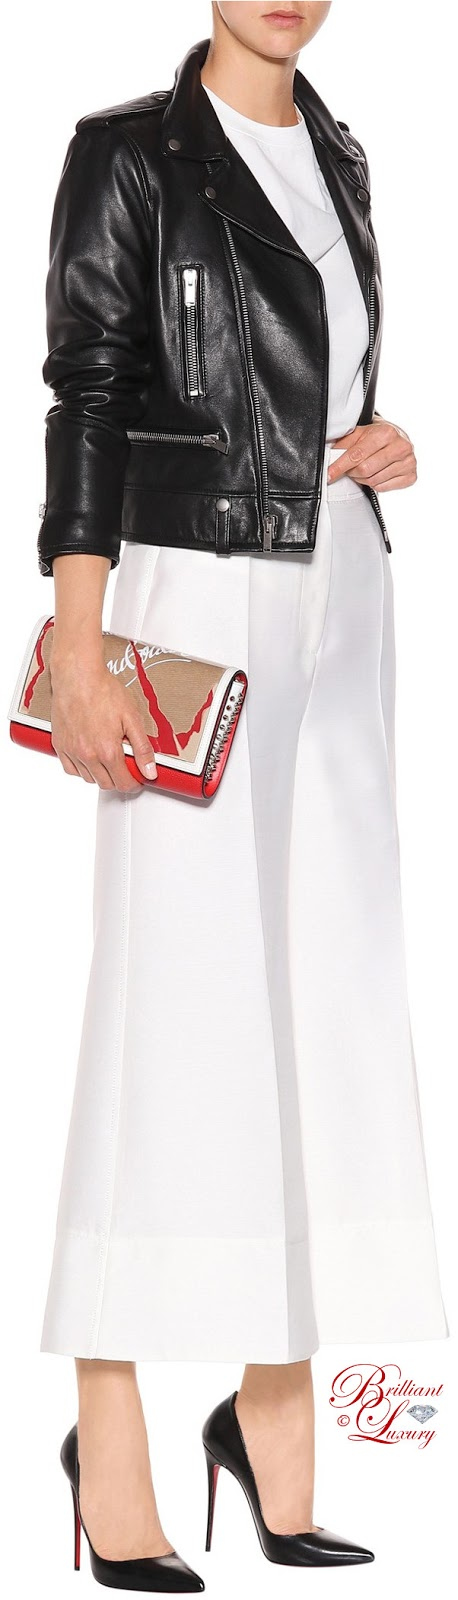 Brilliant Luxury ♦ Christian Louboutin So Kate leather pumps in black and Paloma Loubikraft leather clutch 2018